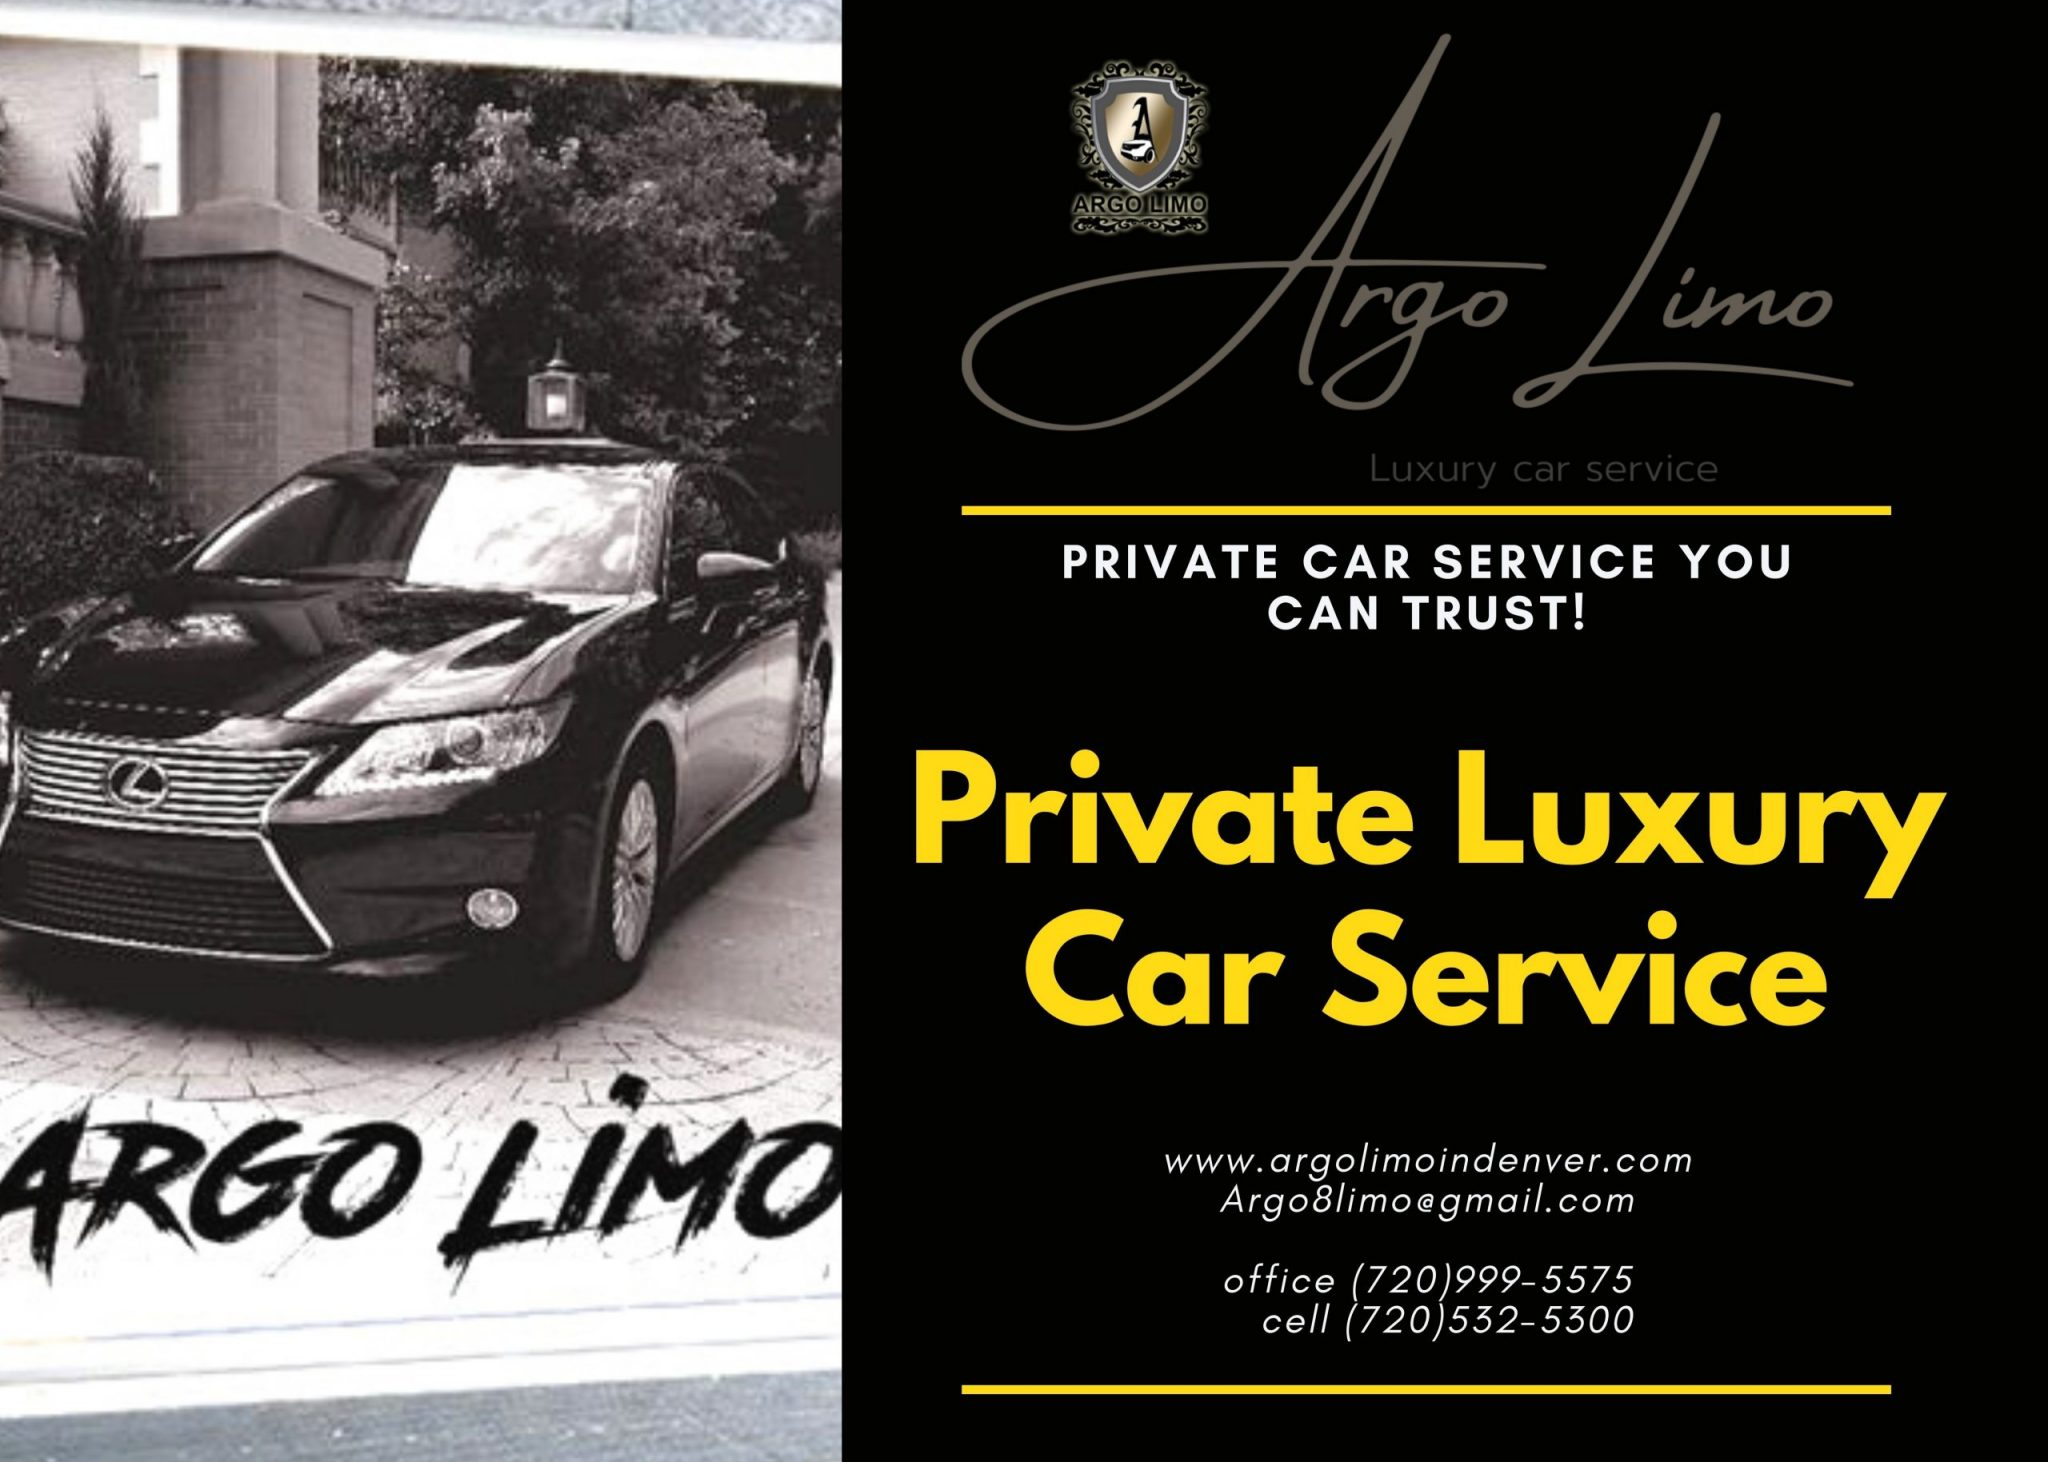 About Us-Argo Limo